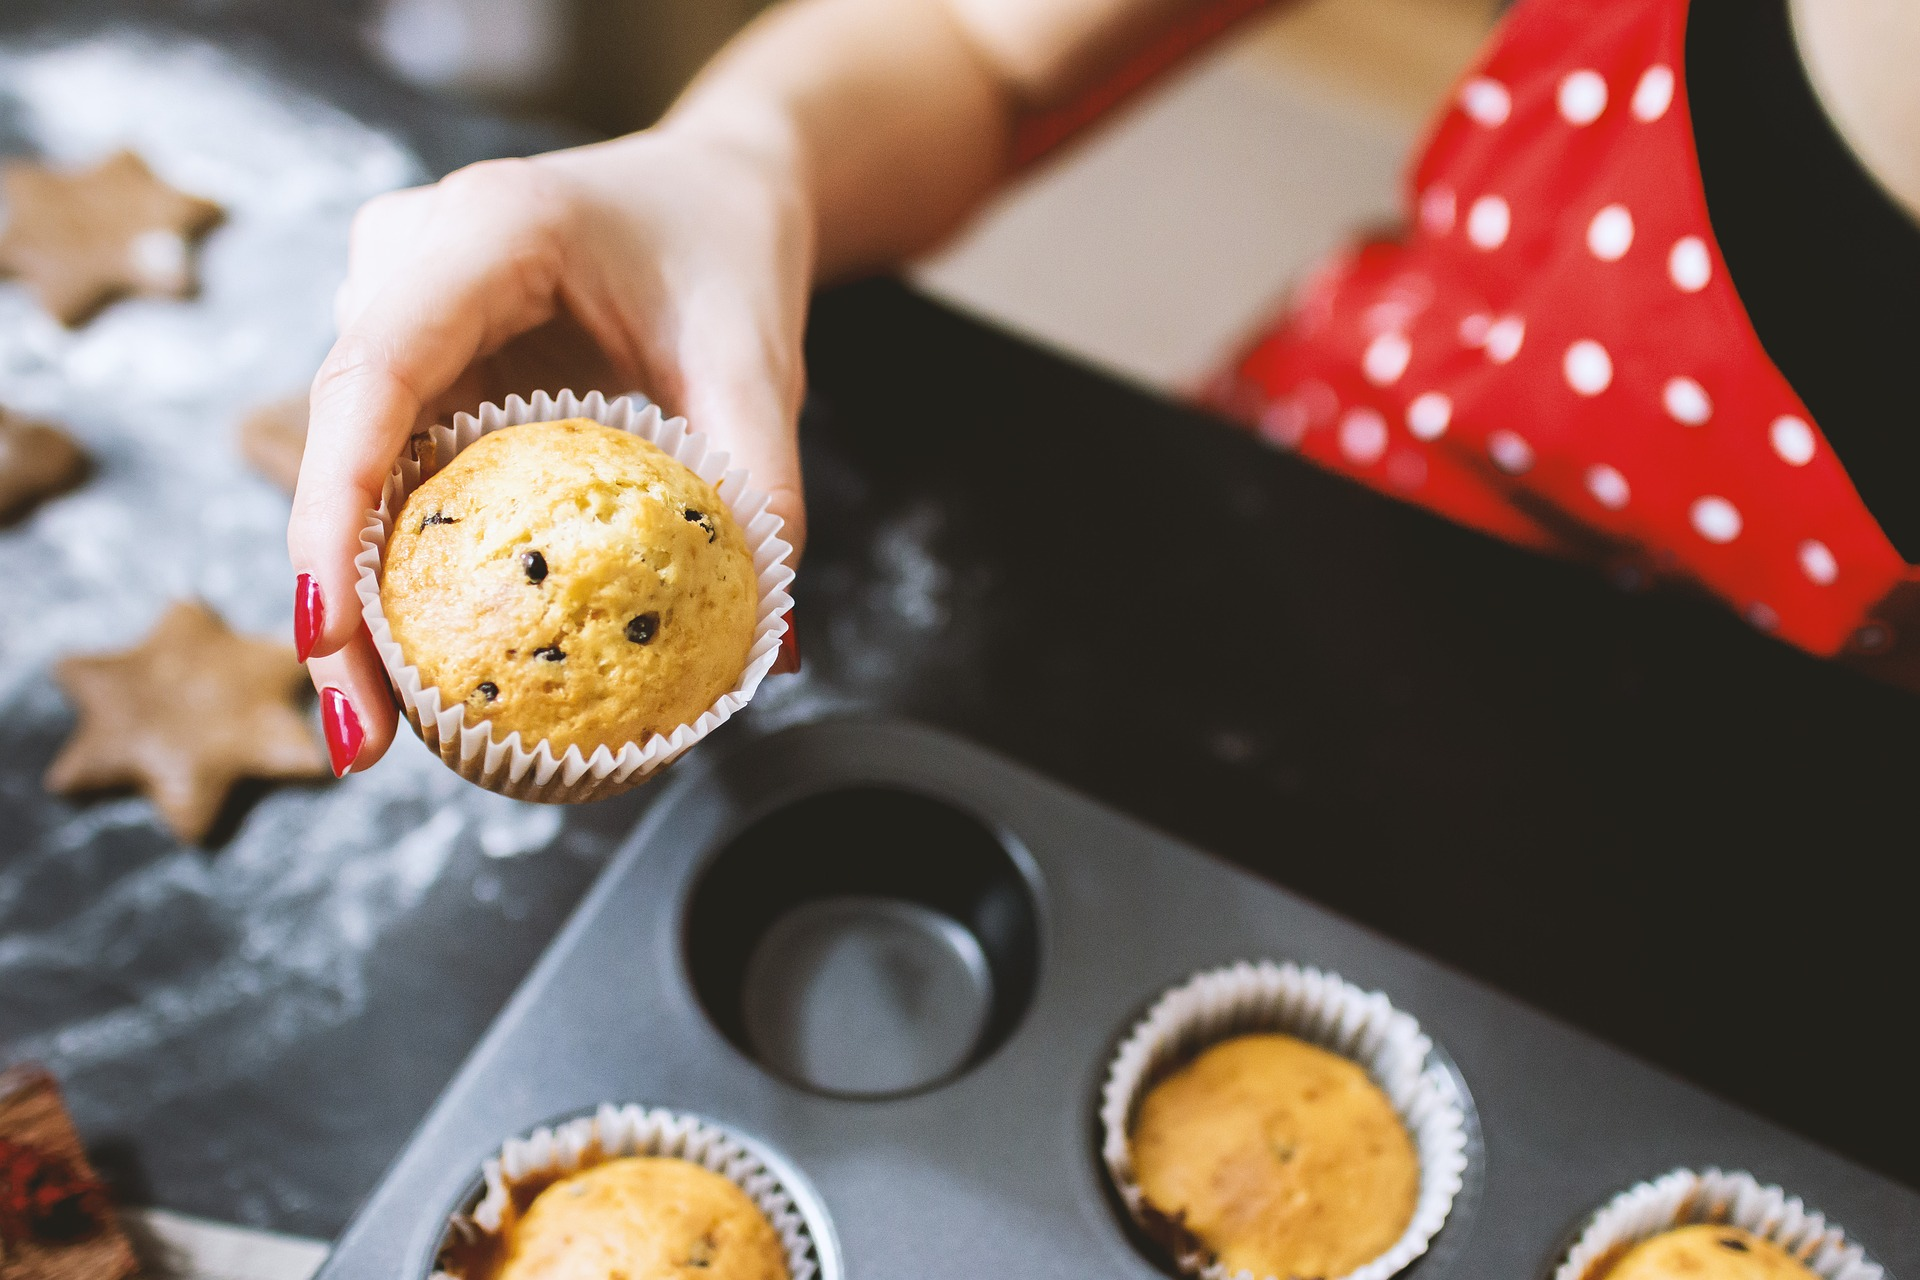 Woman holding up a muffin with baking pan full of other muffins | The Refinery